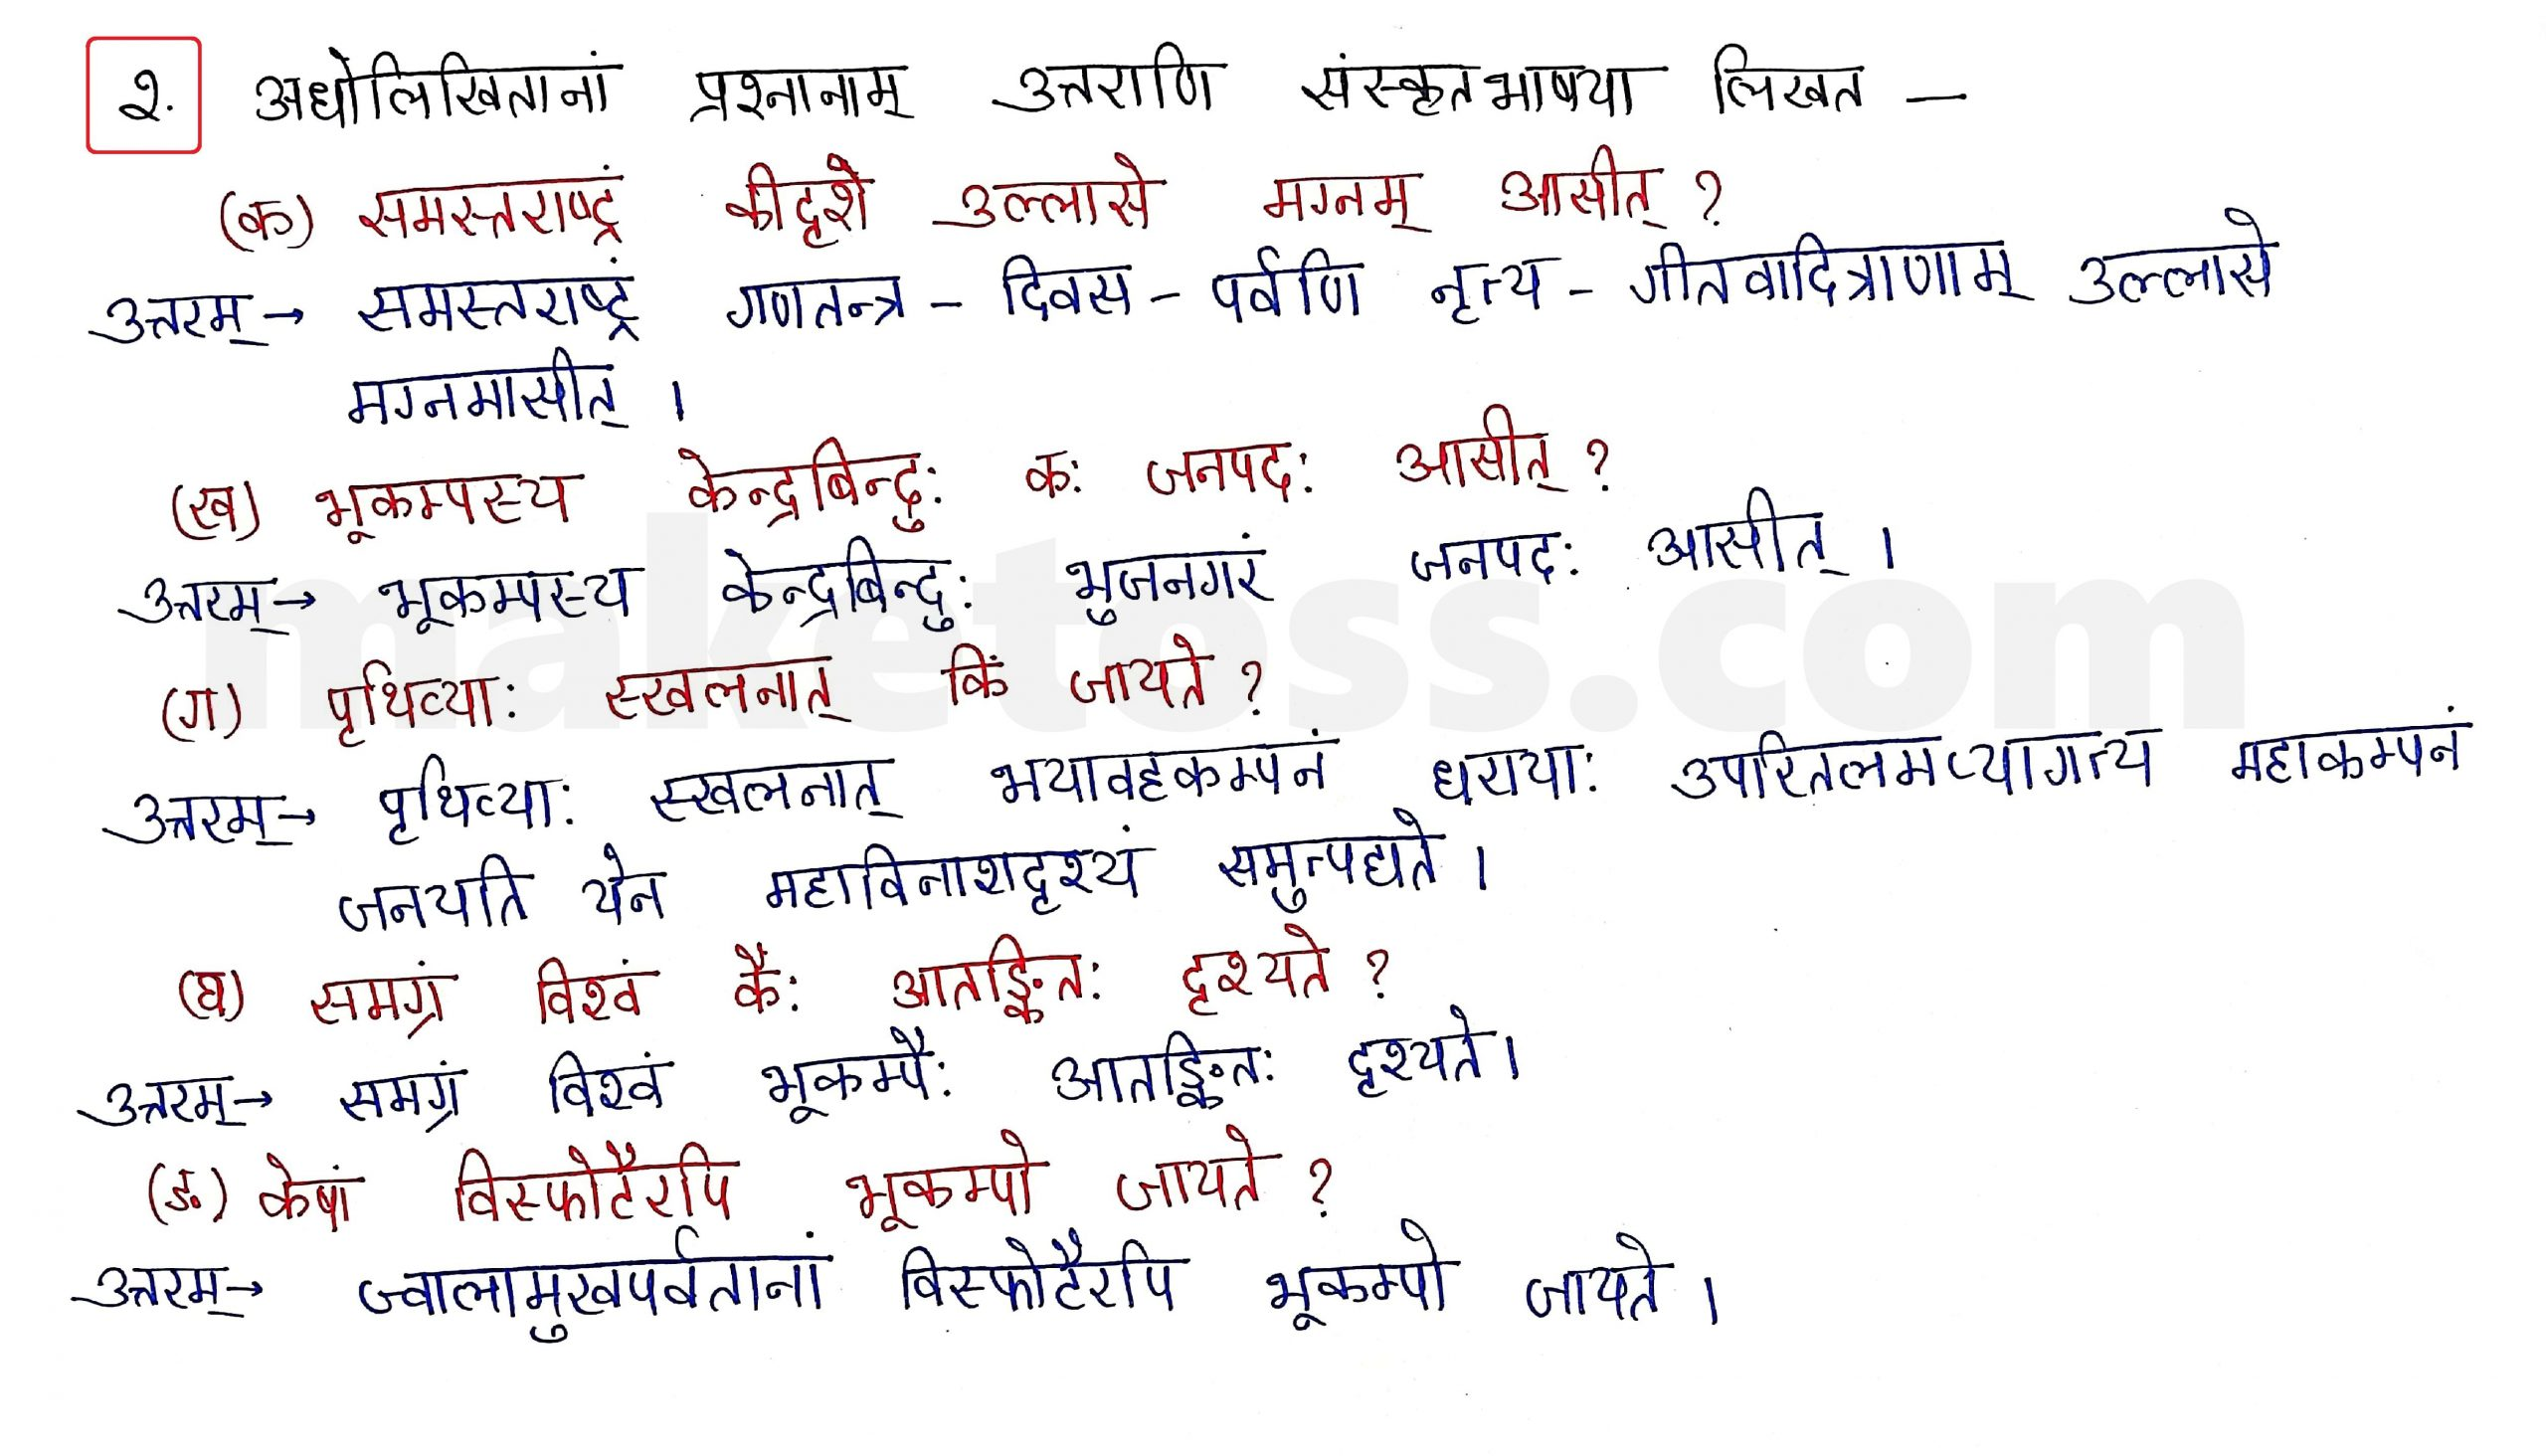 Sanskrit Class 10 - Chapter 10 - भूकंपविभीषिका Question 2 with Answer